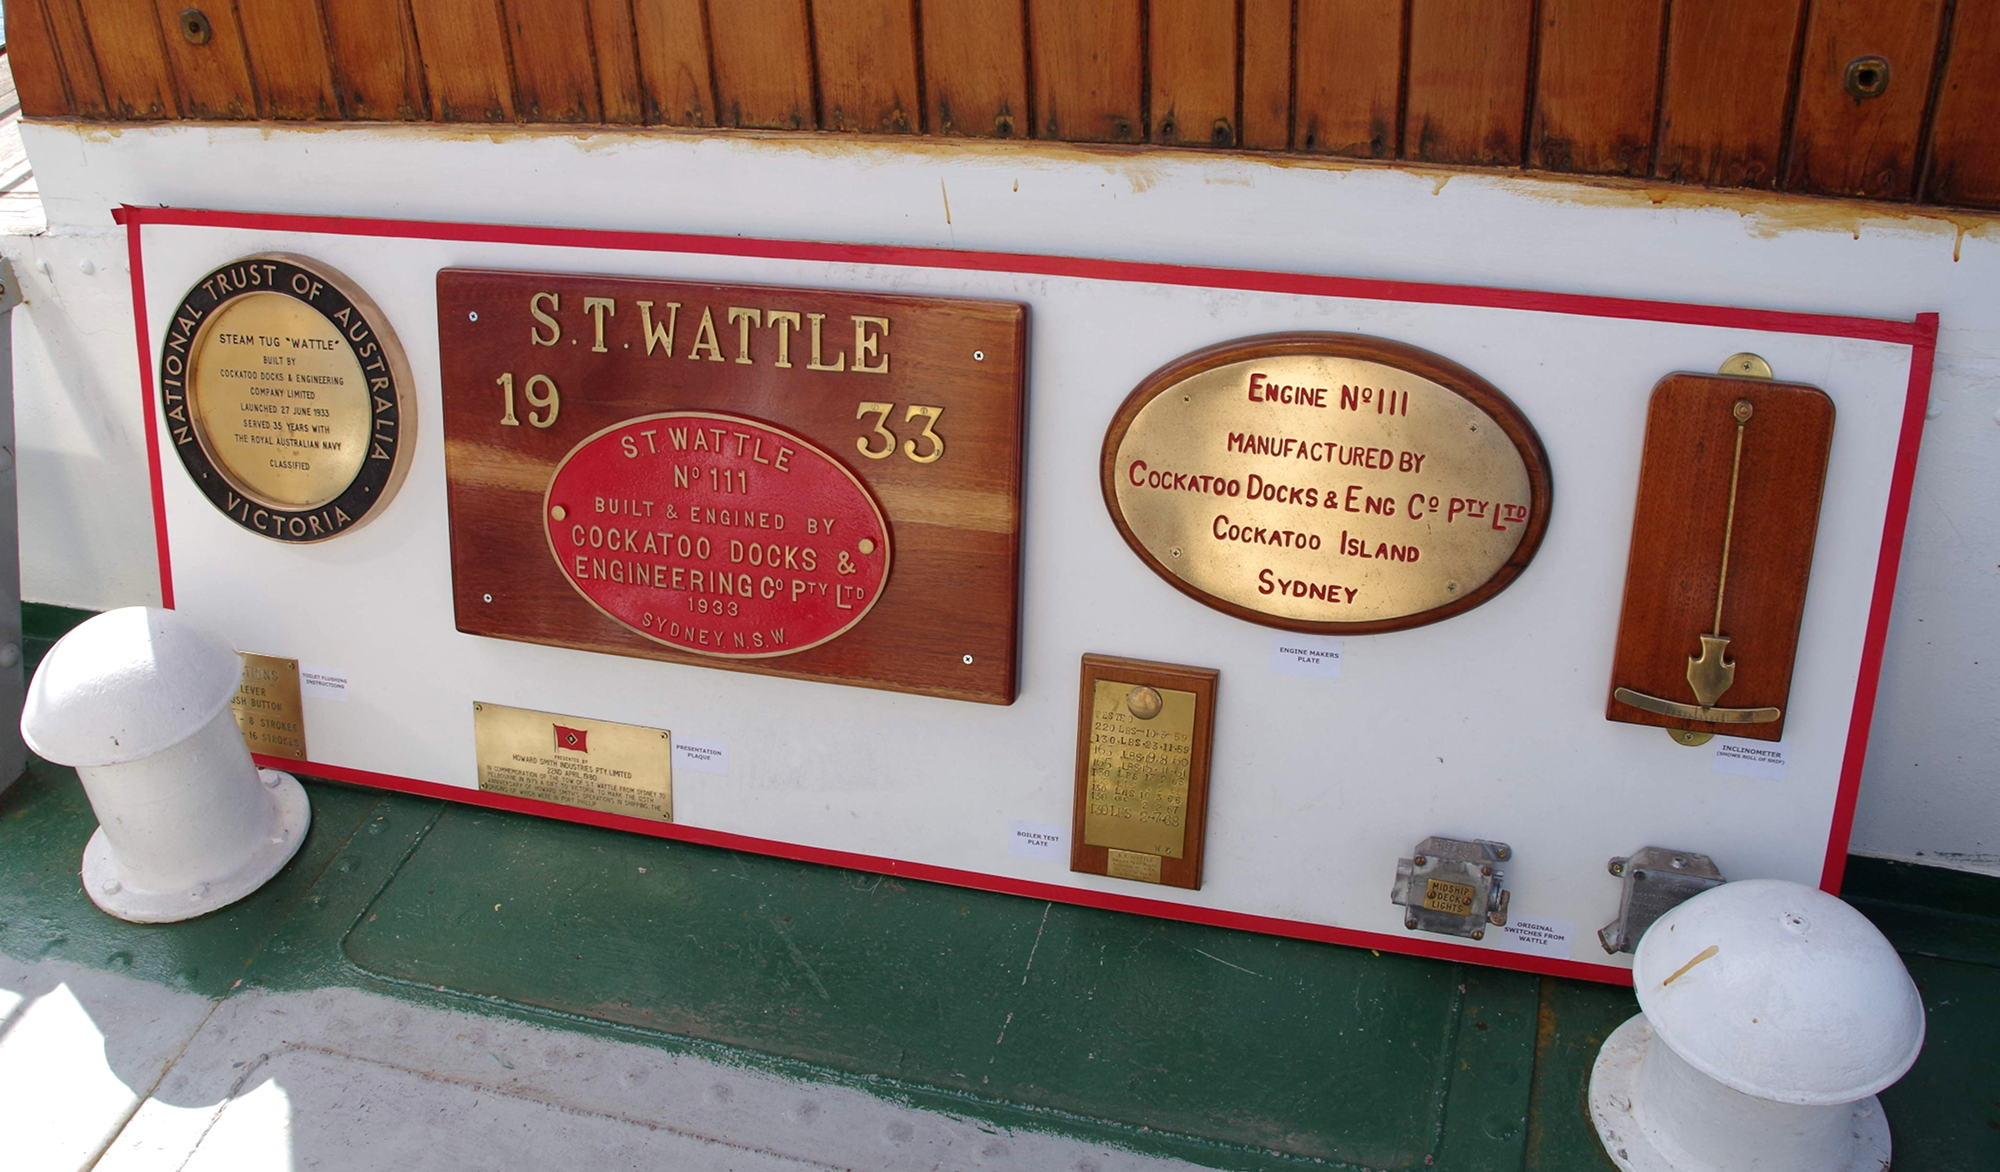 Builder's plaque and artifacts, February 2019, Jeff Malley